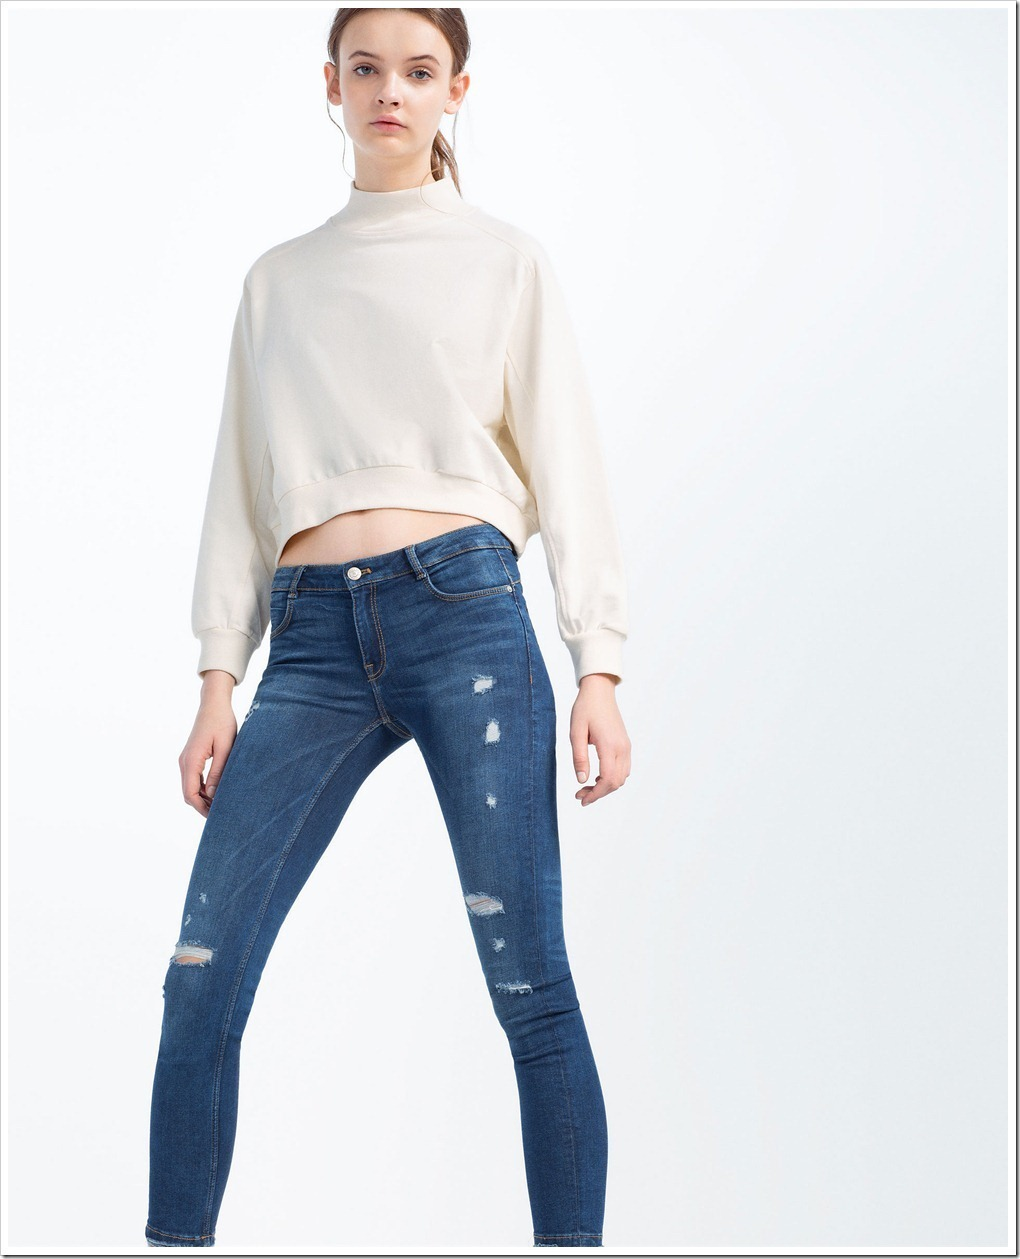 SS16 Denim styles from Zara : Zara Collection